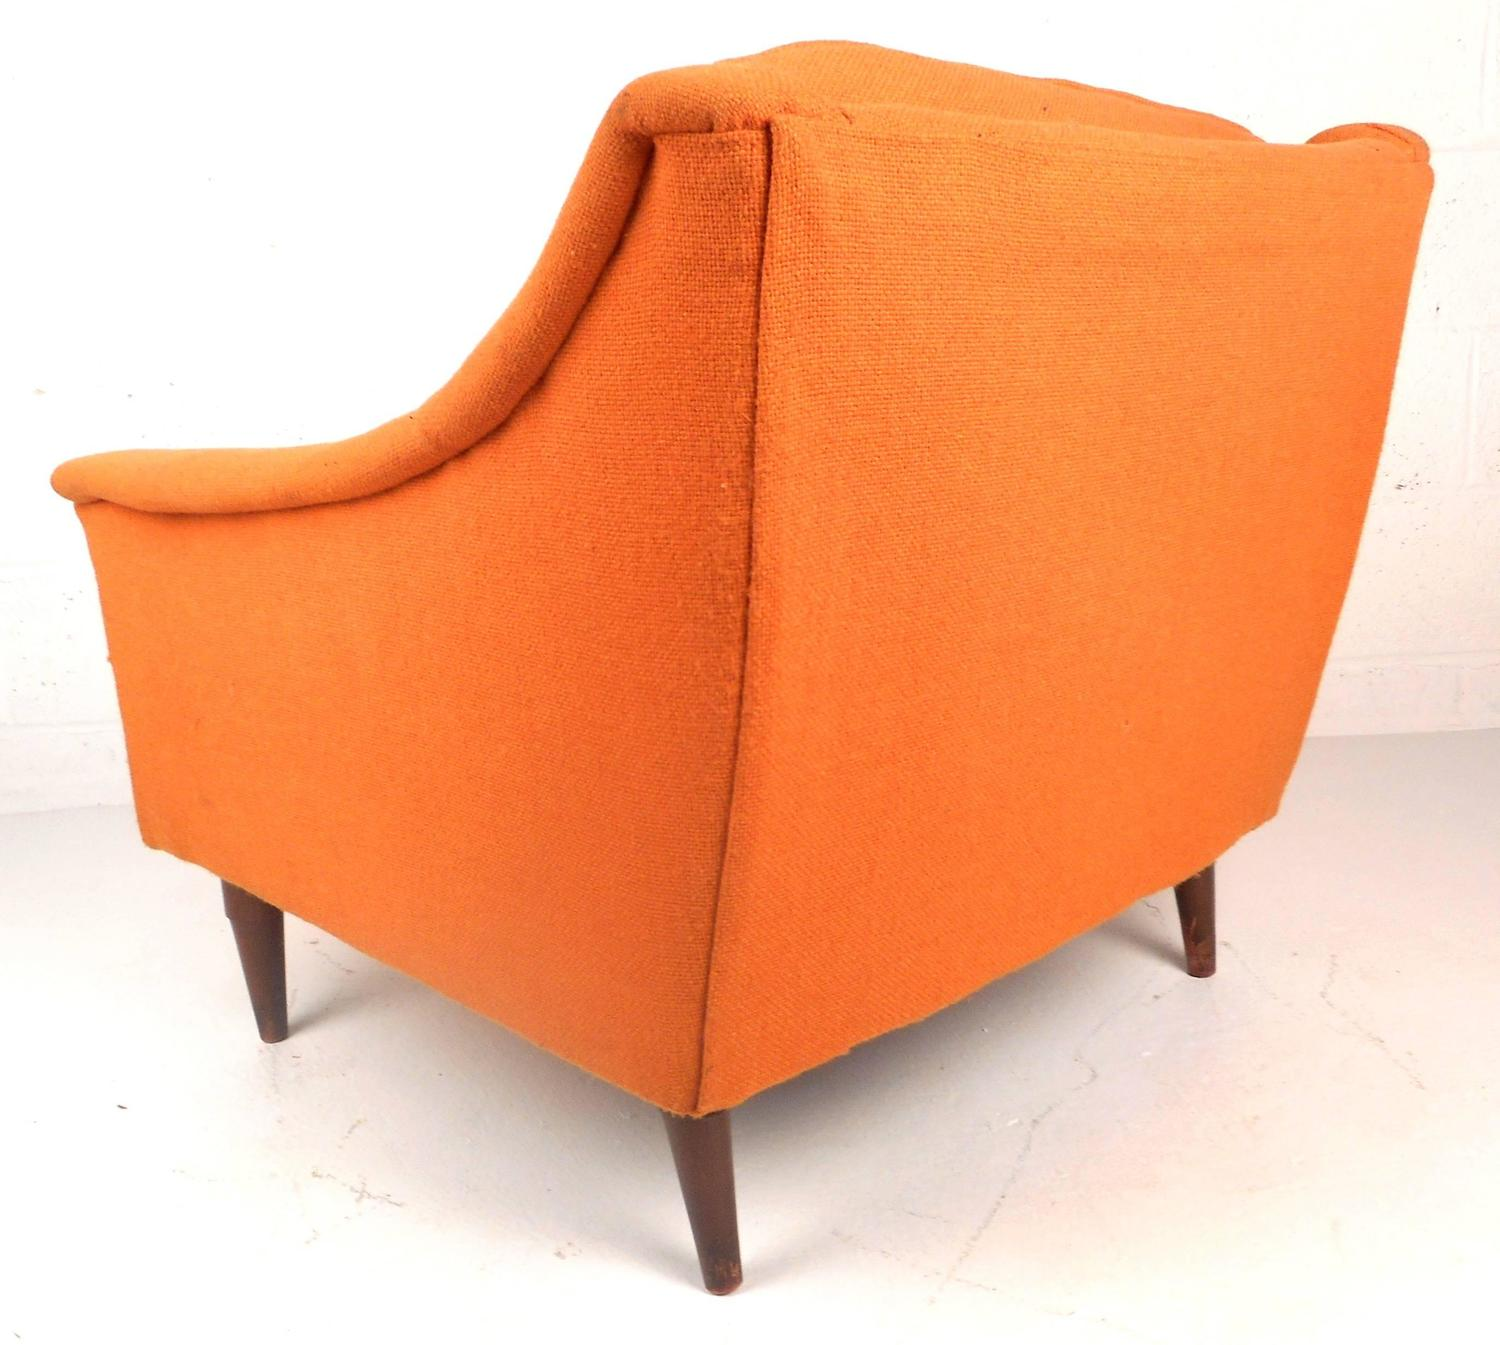 Mid Century Modern Danish Lounge Chair By Selig For Sale At 1stdibs